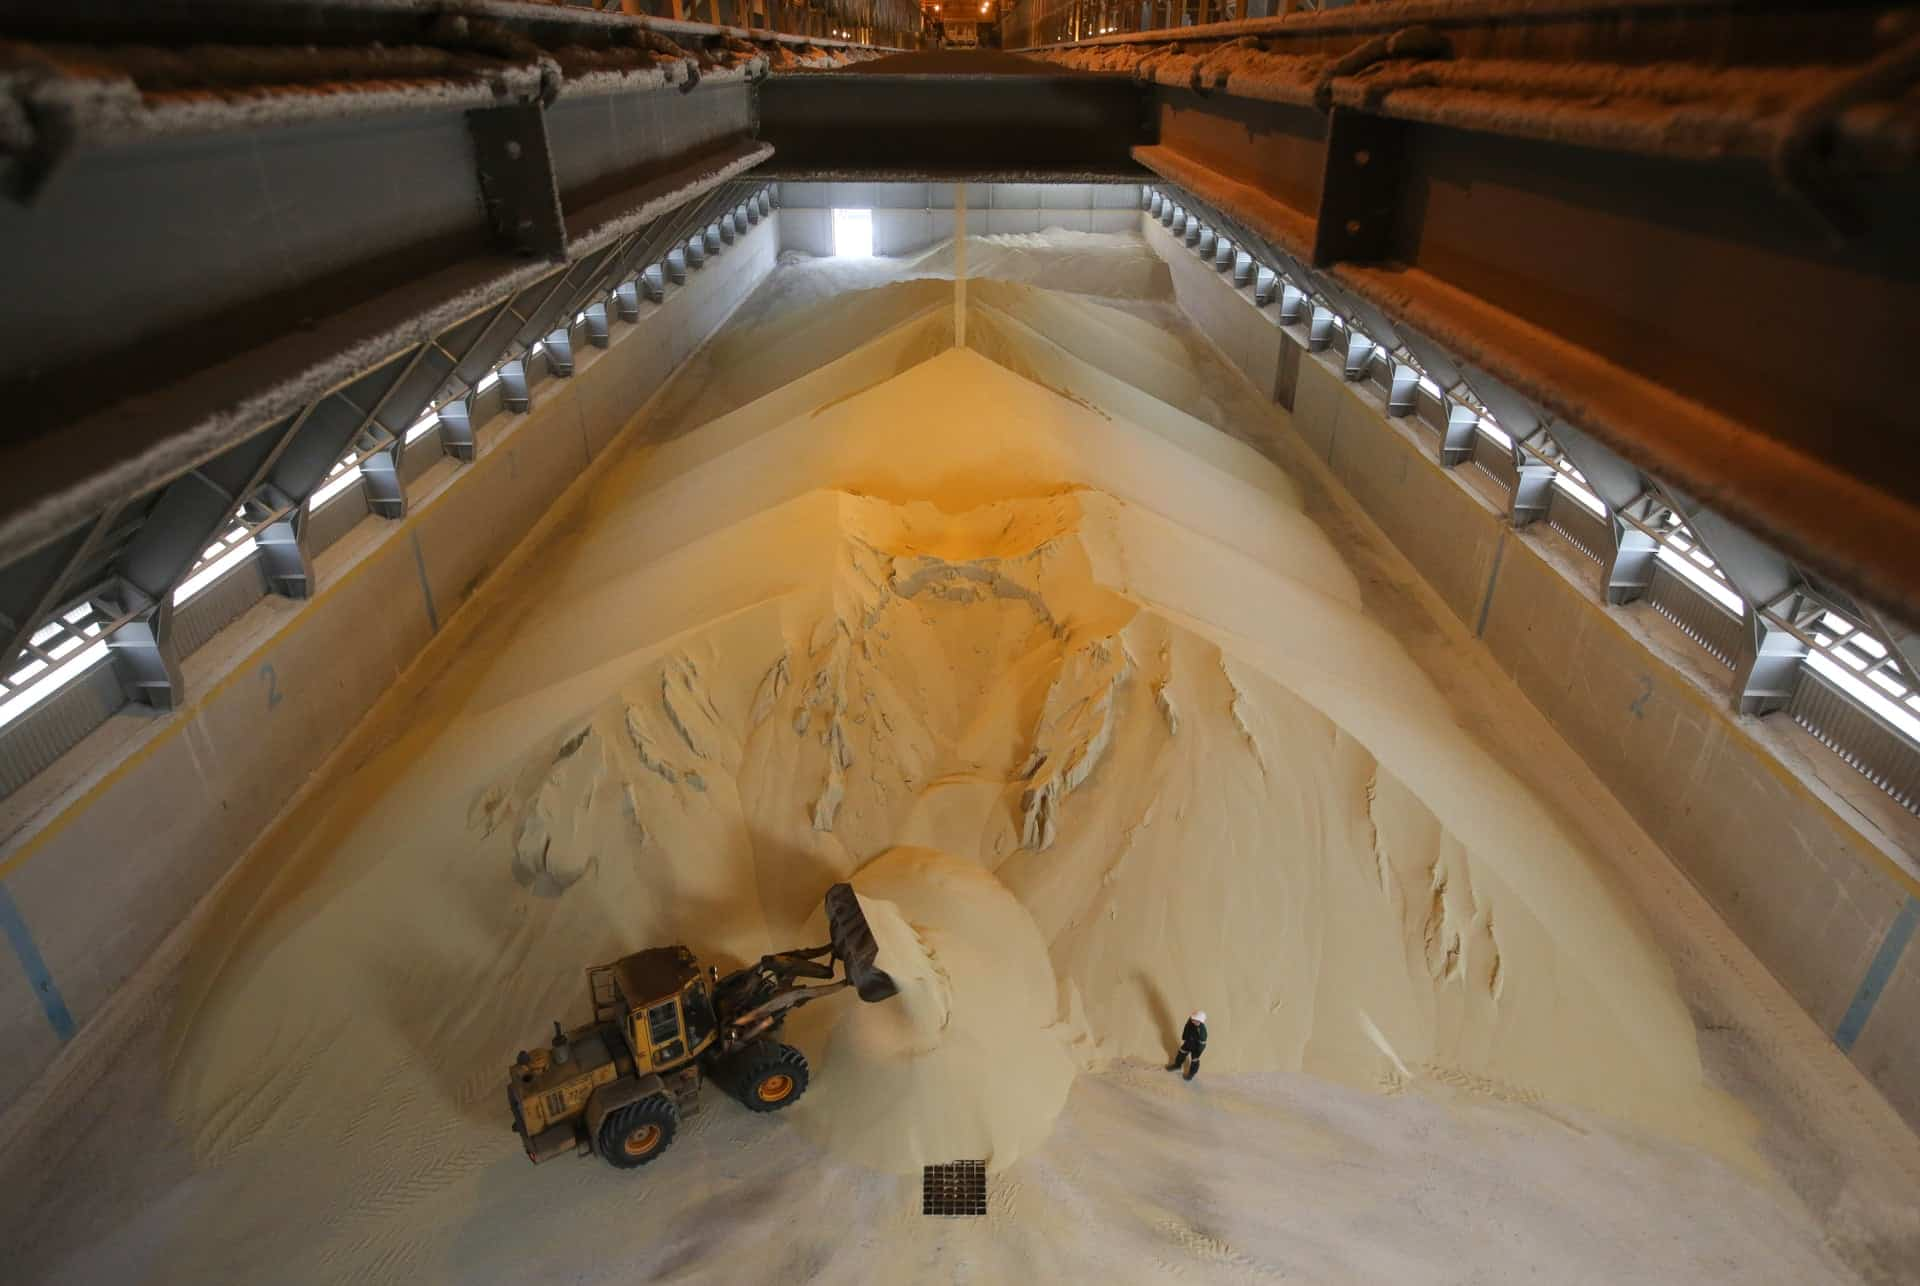 Are There Alternative Methods for Phosphate Fertilizer Production to Prevent Conflicts?